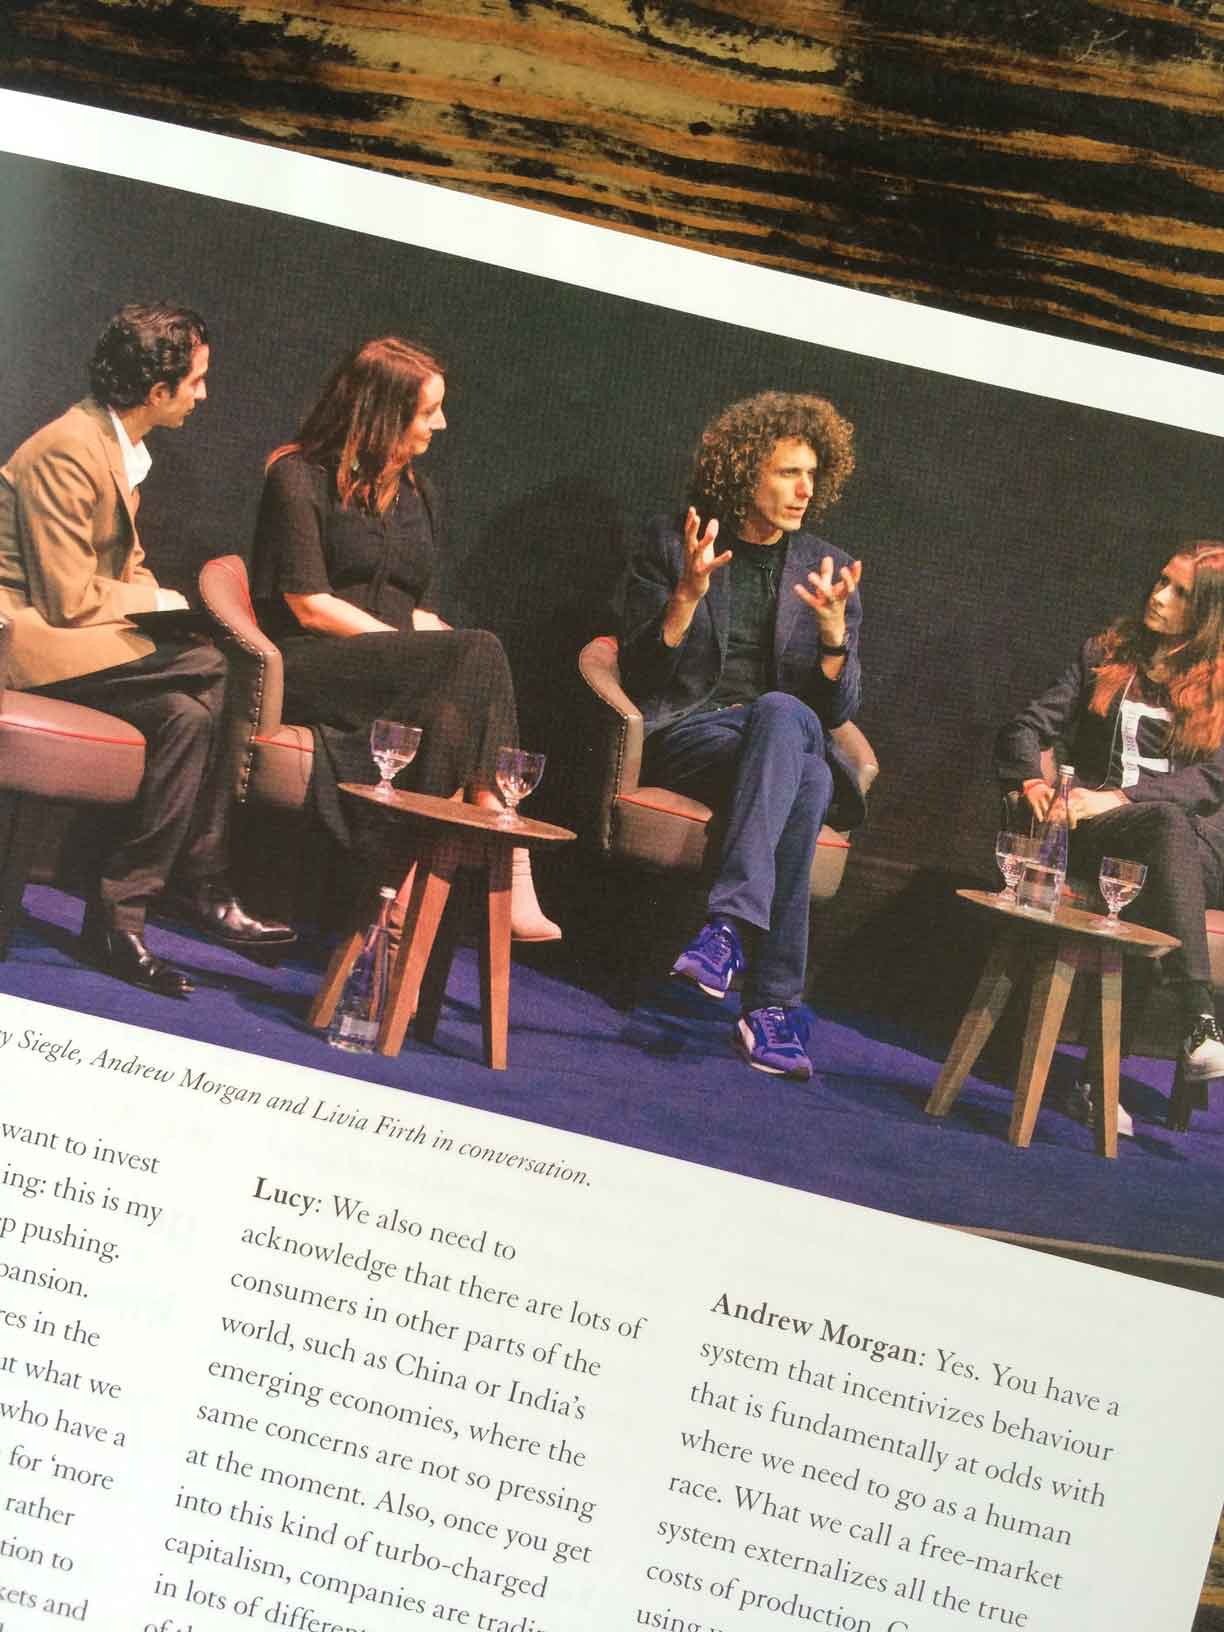 Iman Amed, Lucy Siegle, Andrew Morgan and Livia Firth in conversation.